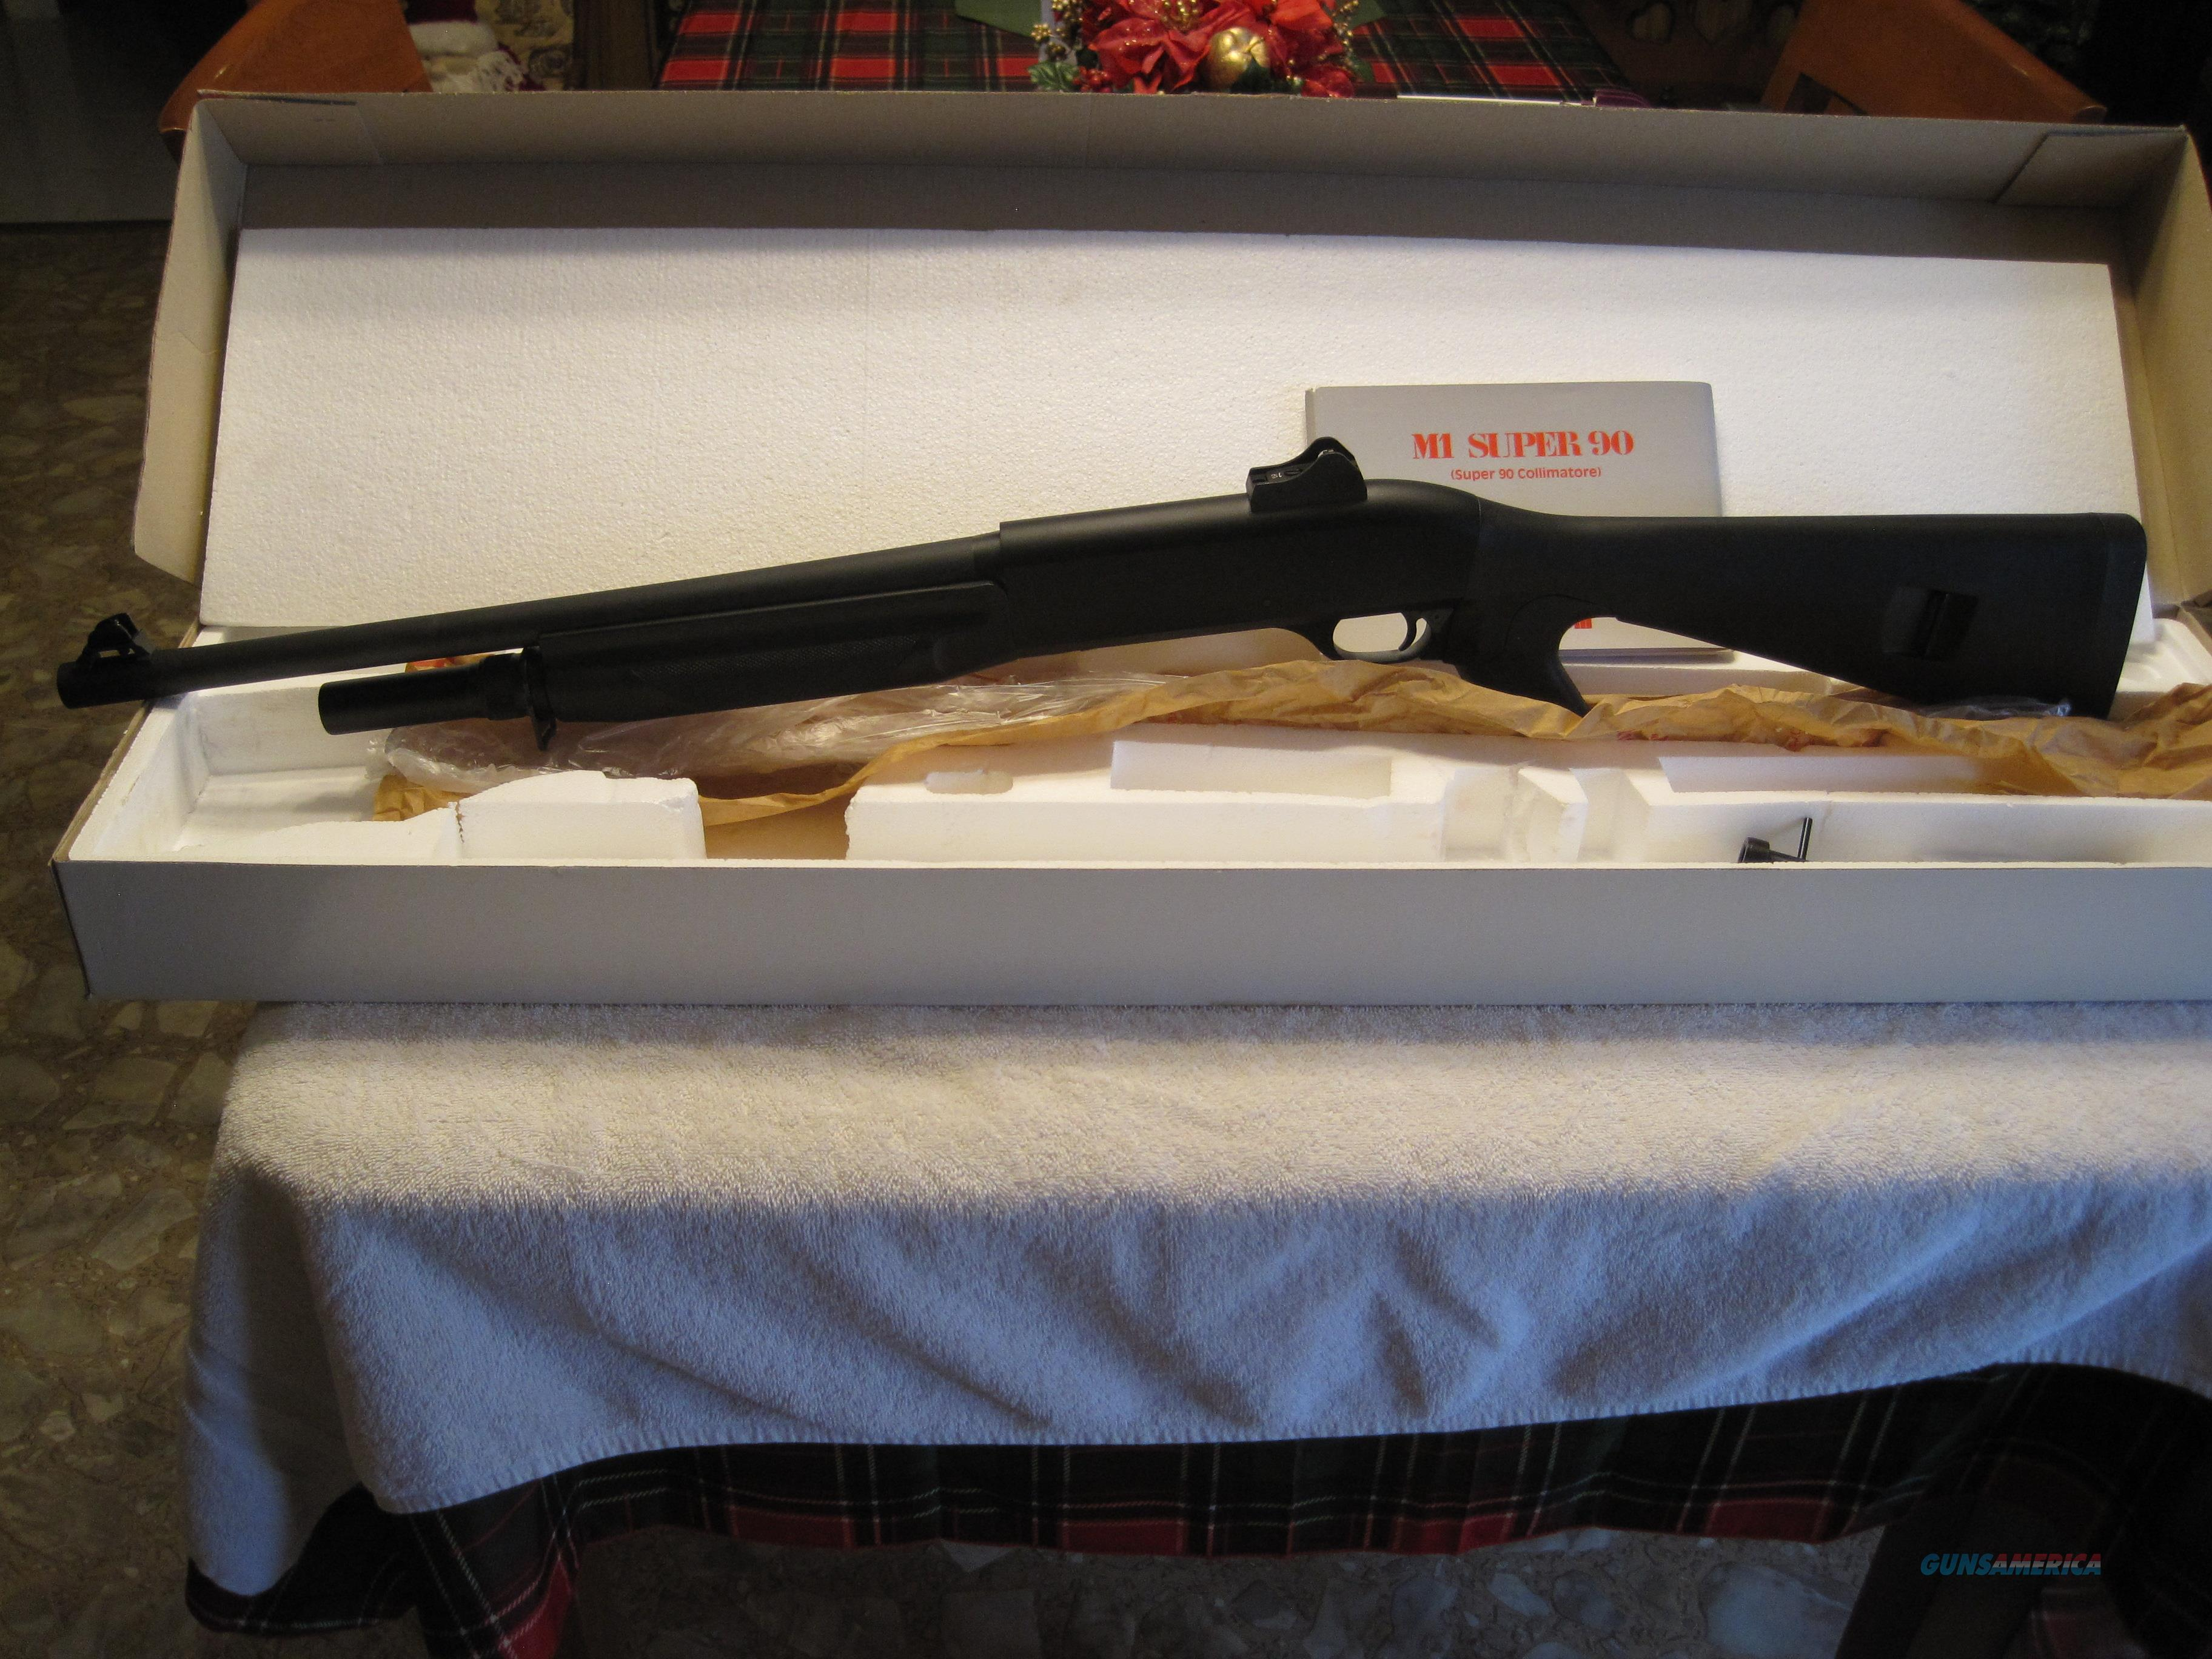 Benelli M1 Super 90 Tactical  Guns > Shotguns > Benelli Shotguns > Tactical